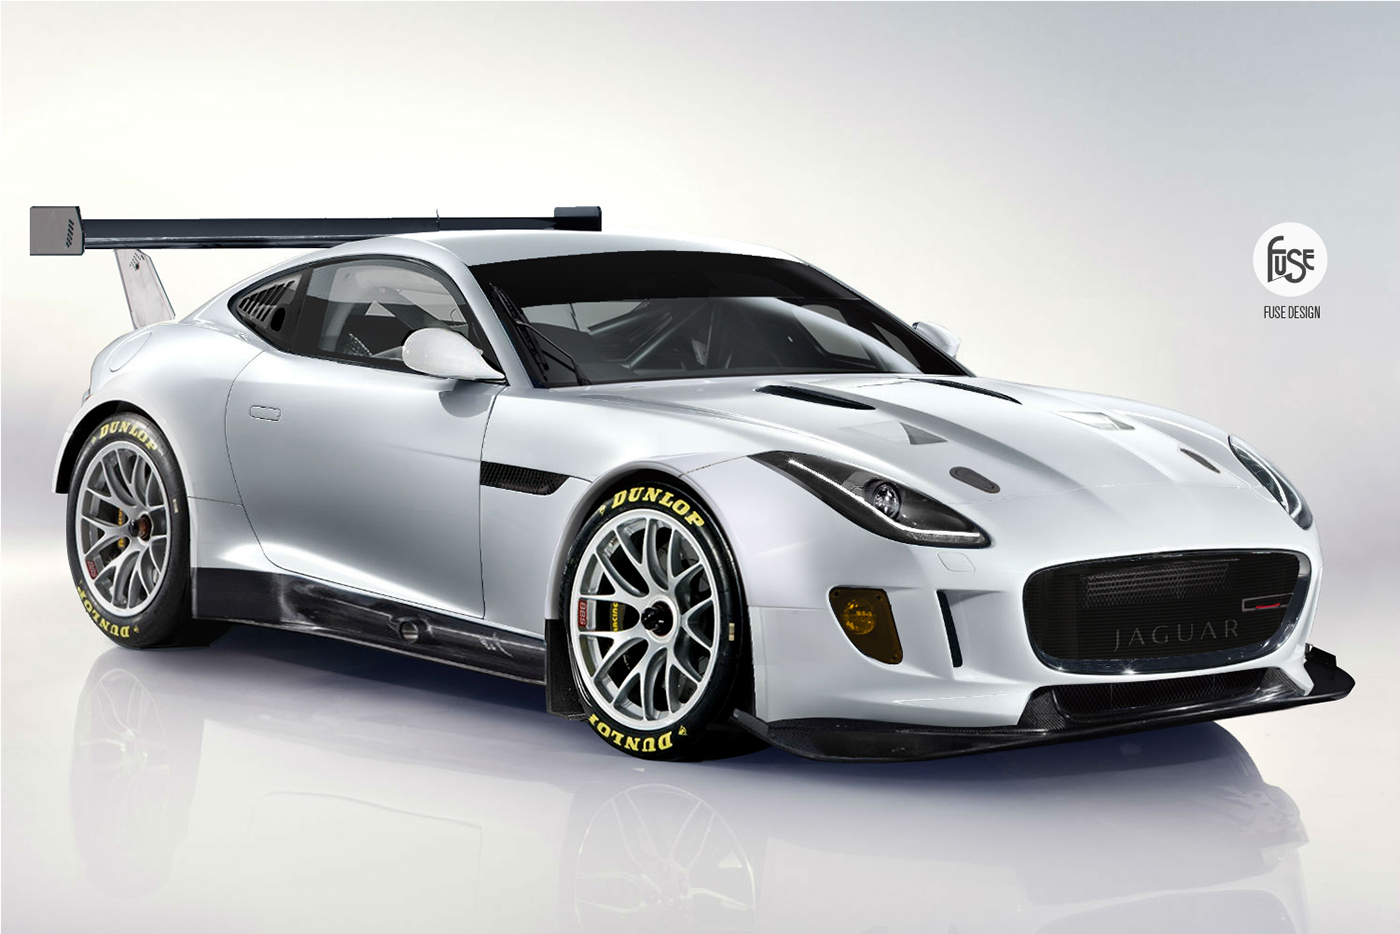 Index additionally Hd Hyundai Logo Background as well Motoring Artist Information also Jaguar F Type GT3 Imagined moreover 24h Rennen Kurzanalyse Nuerburgring 2013. on aston martin racer